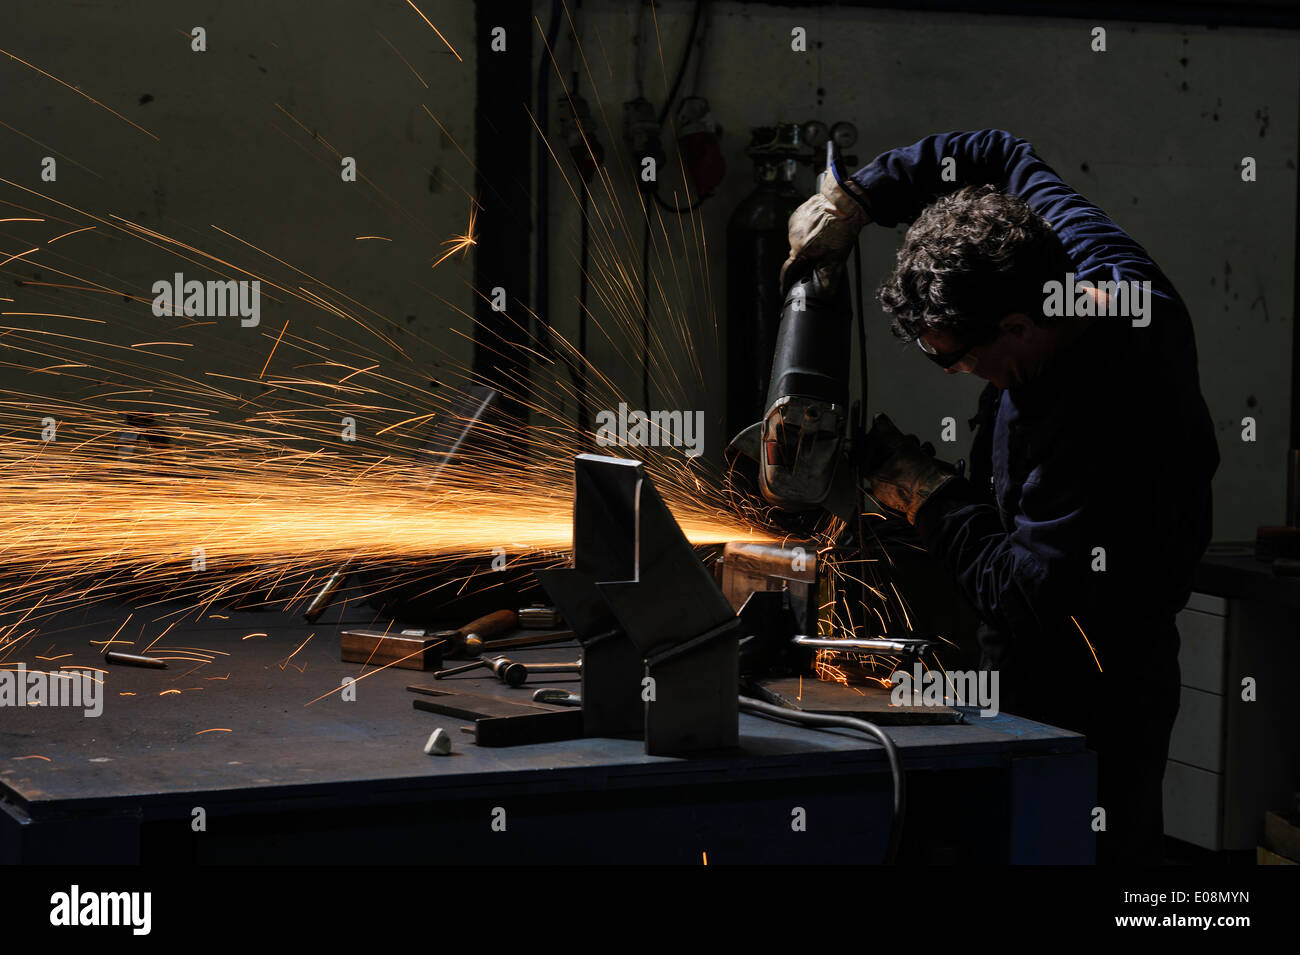 Factory worker using angle grinder to cut metal - Stock Image